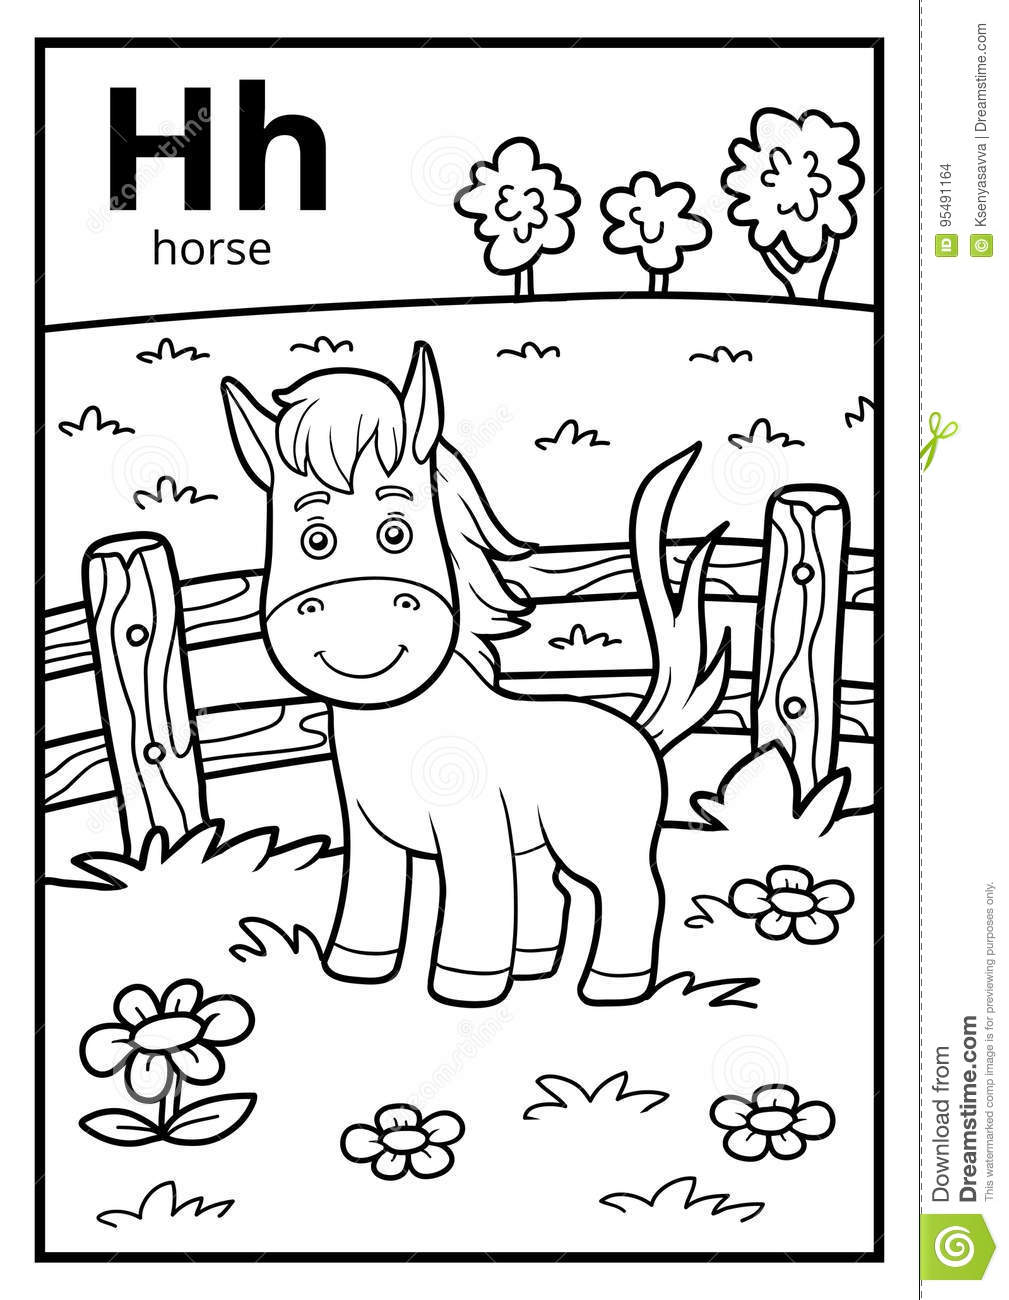 h coloring pages for kids letter h is for hen super coloring abc coloring pages pages for h coloring kids